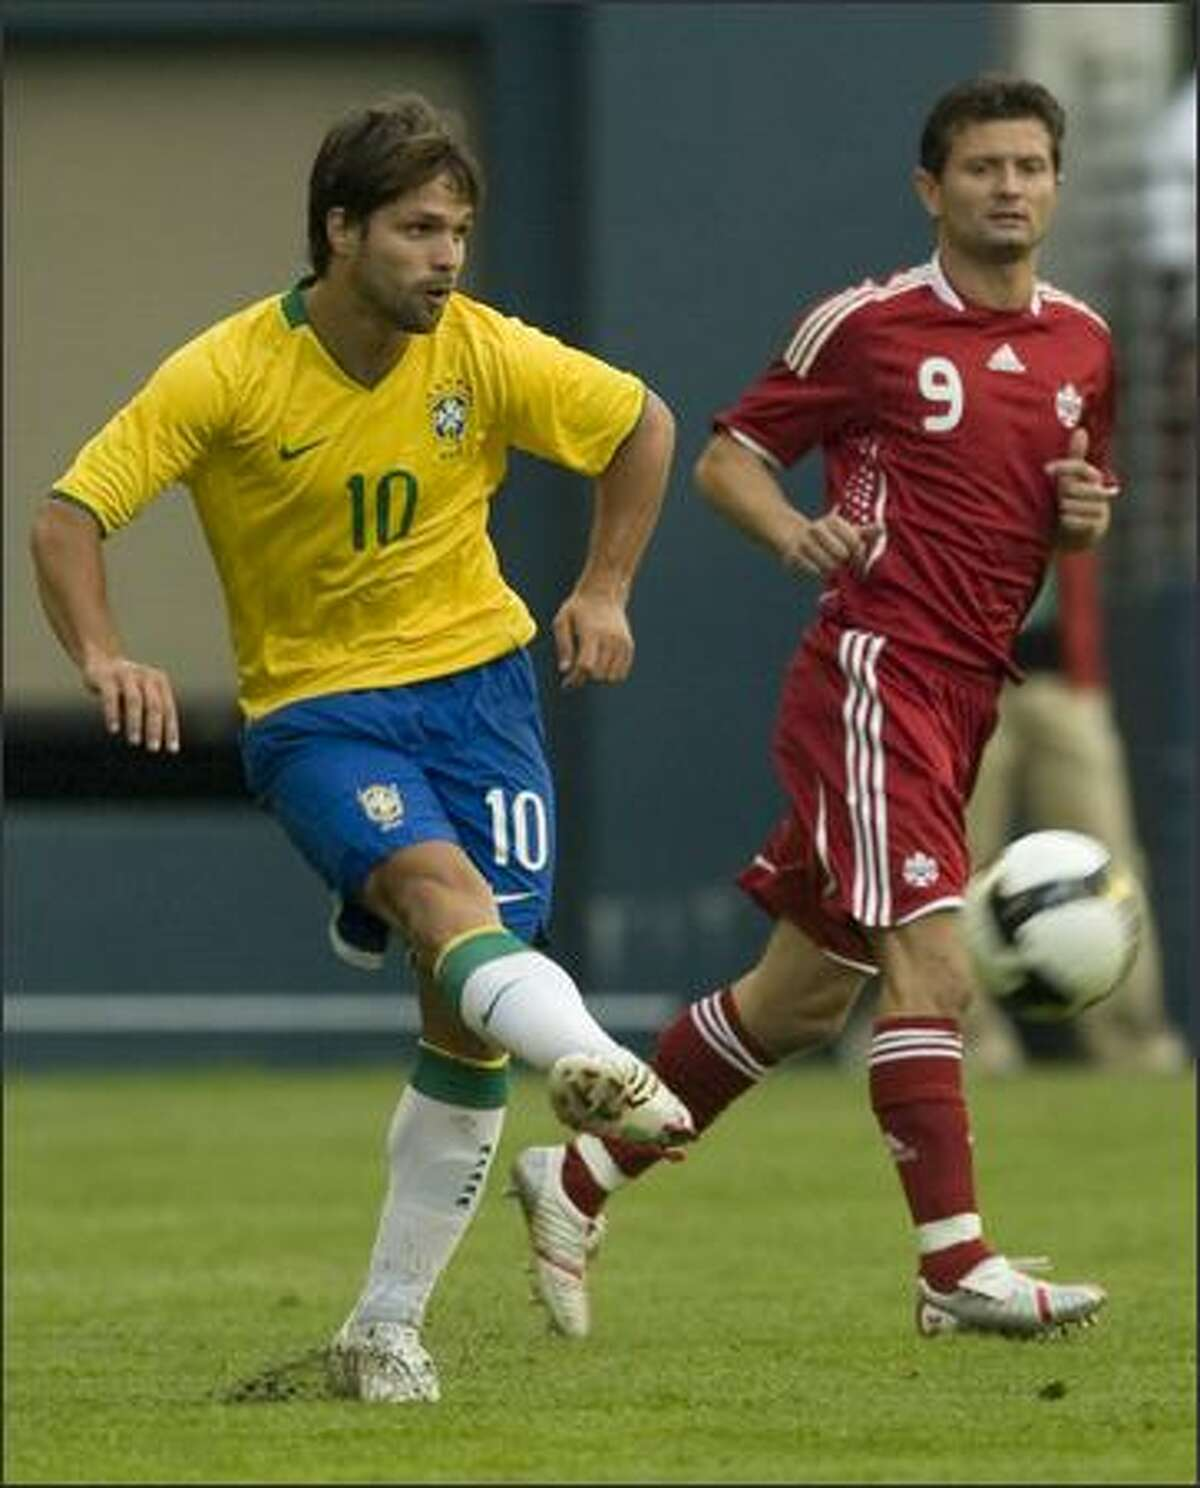 Brazil's Diego (10) fires the ball. Canada's Tomasz Radzinski (9) watches.